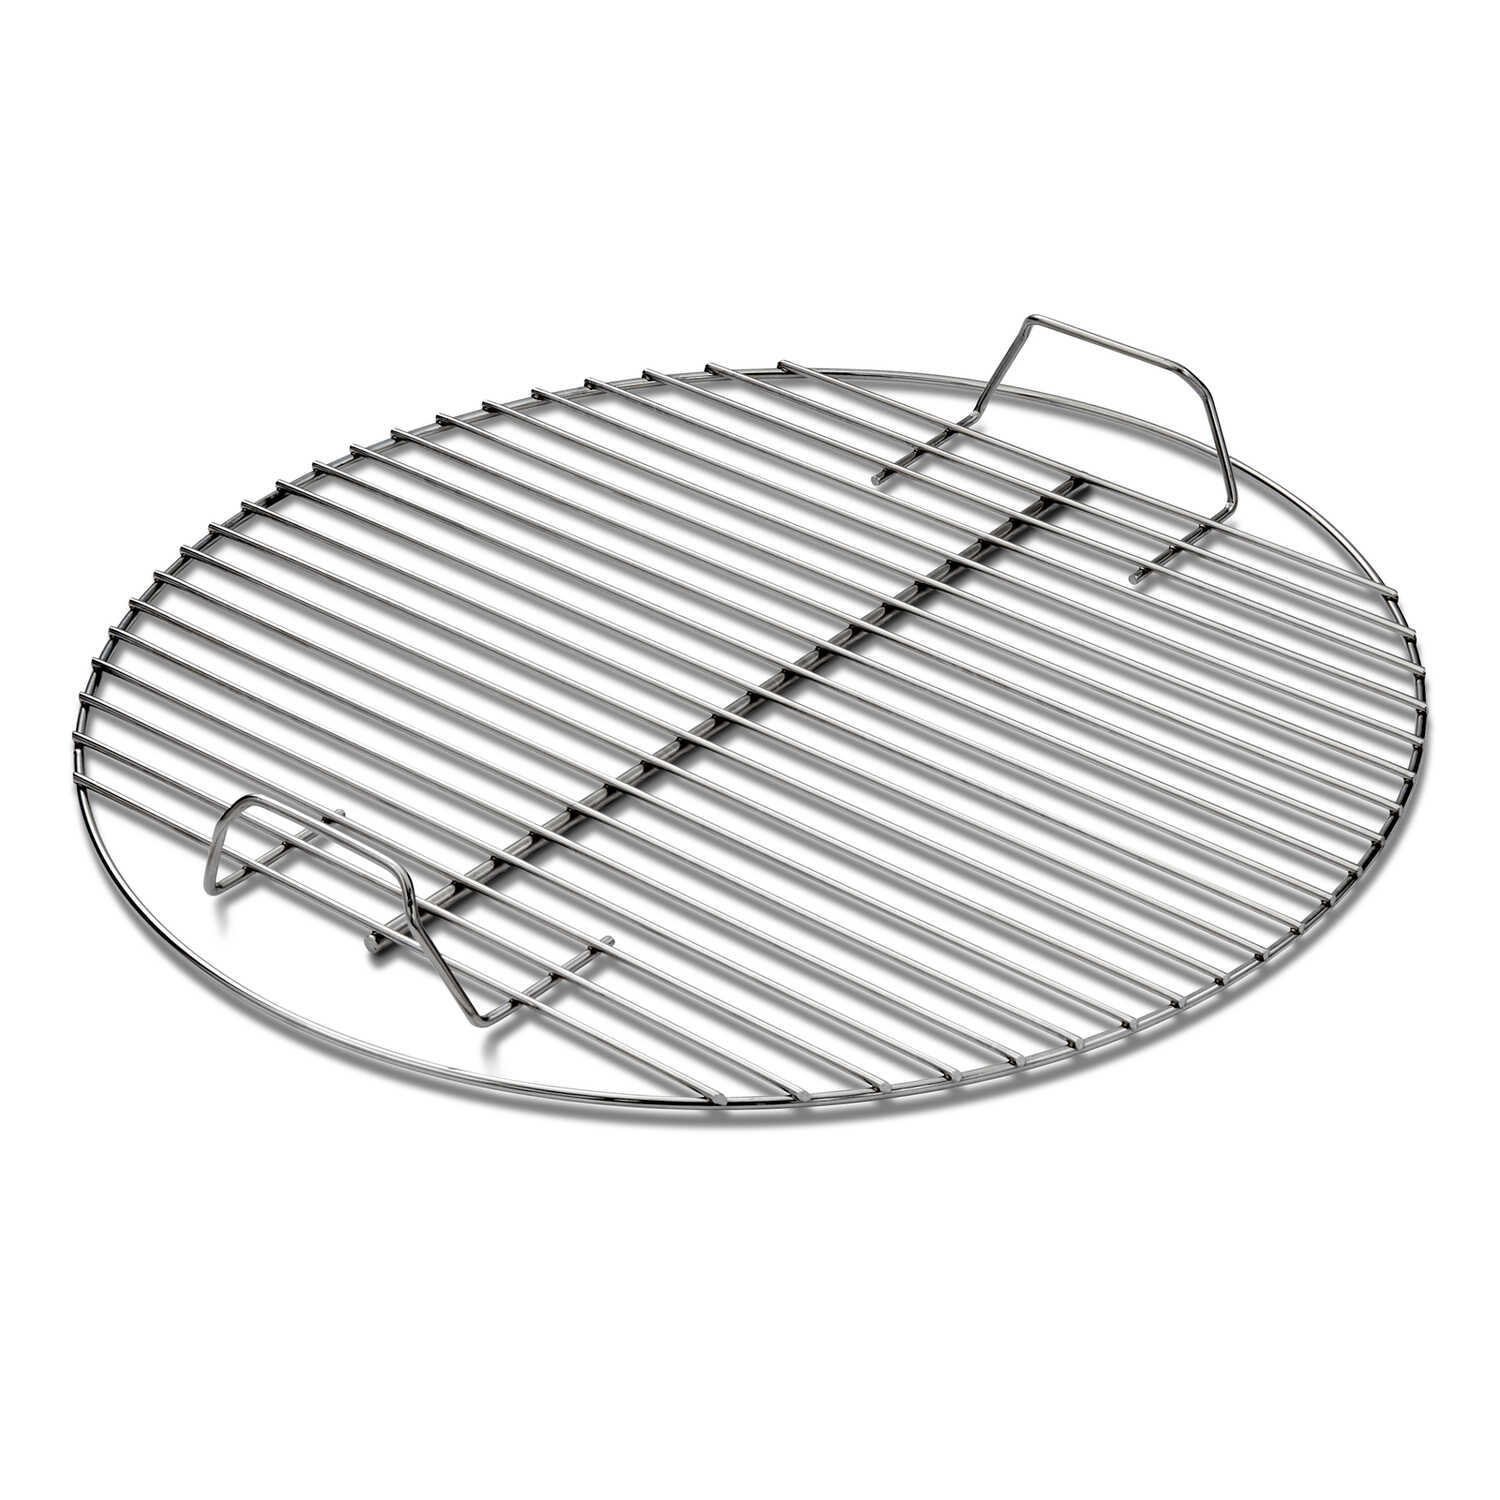 Weber  Plated Steel  Grill Cooking Grate  2 in. H x 17.5 in. W x 17.5 in. L